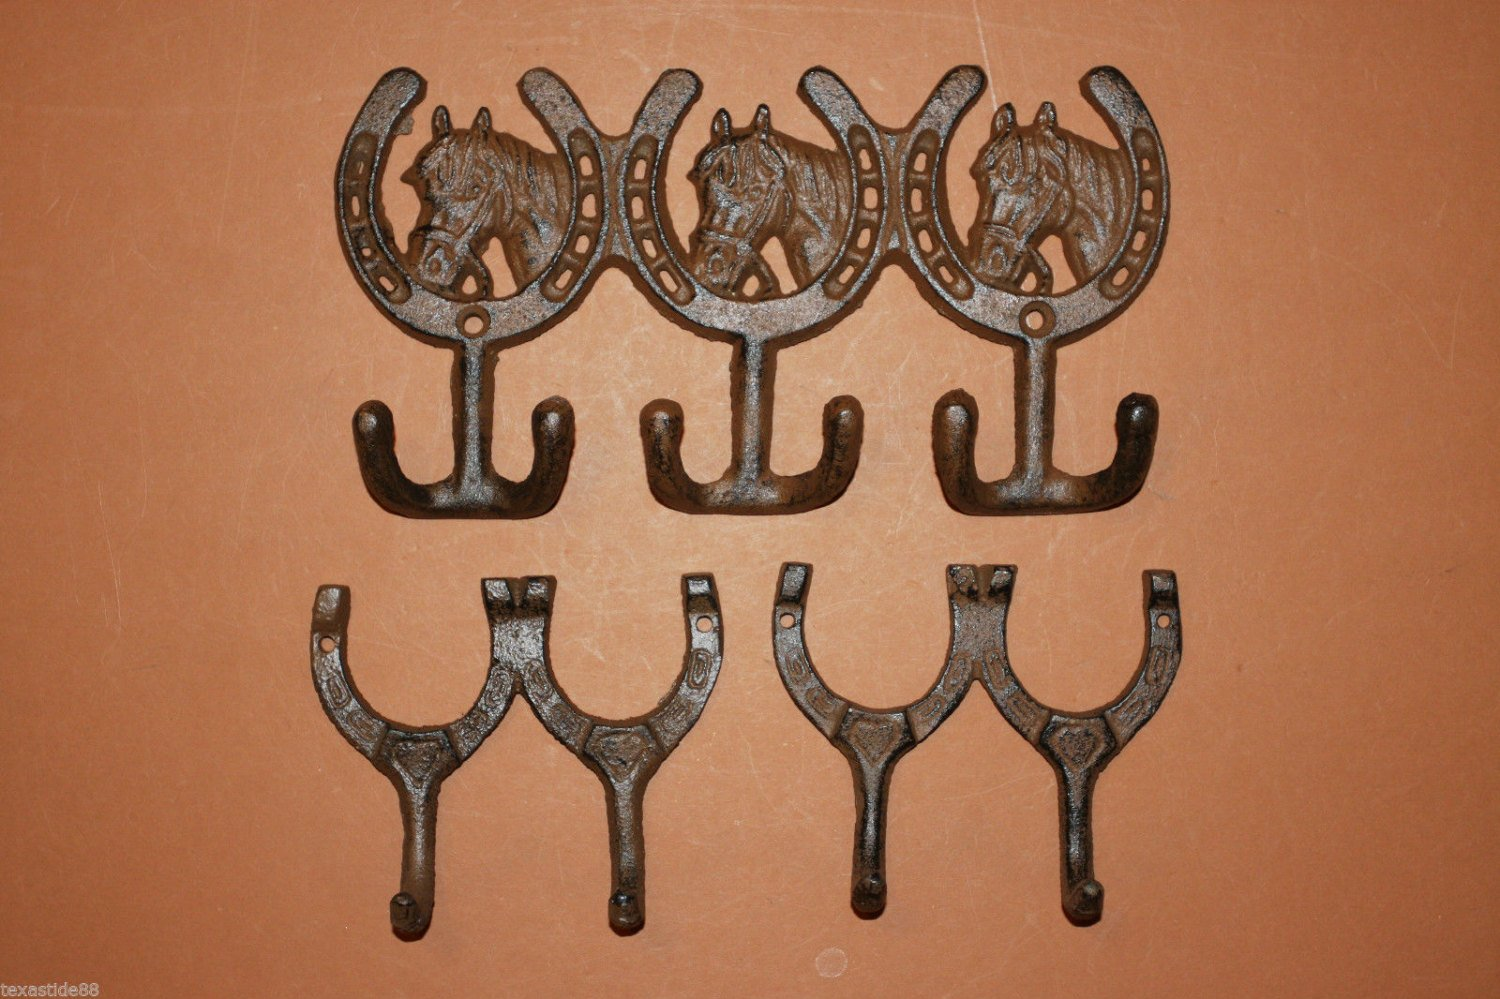 3)pcs, Country Western Kitchen Decor, Western Kitchen Decor, Horseshoe decor, kitchen towel hook, rustic, brown, W-30, 2/W-9